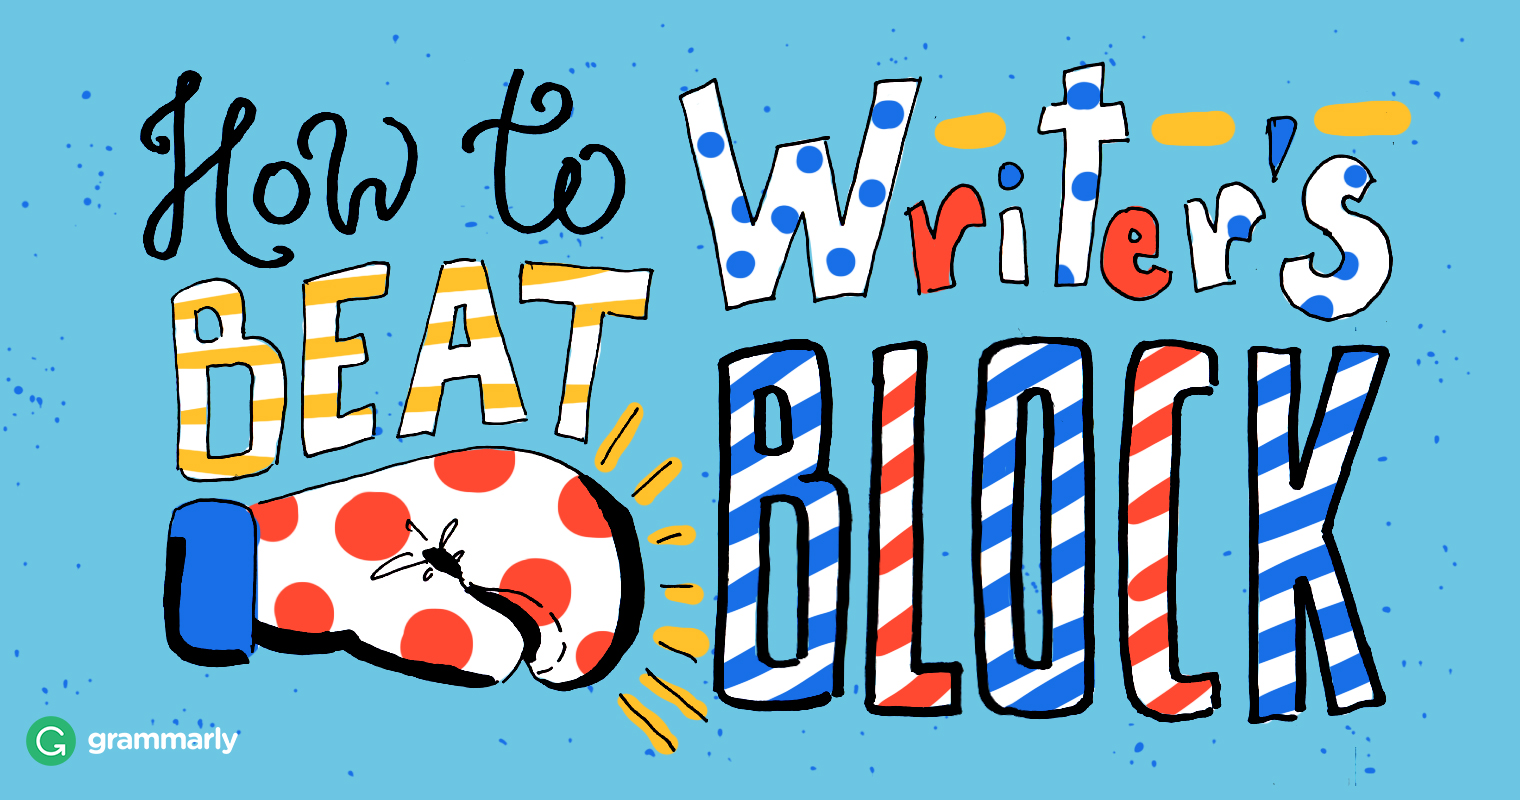 How to Beat Writer's Block image